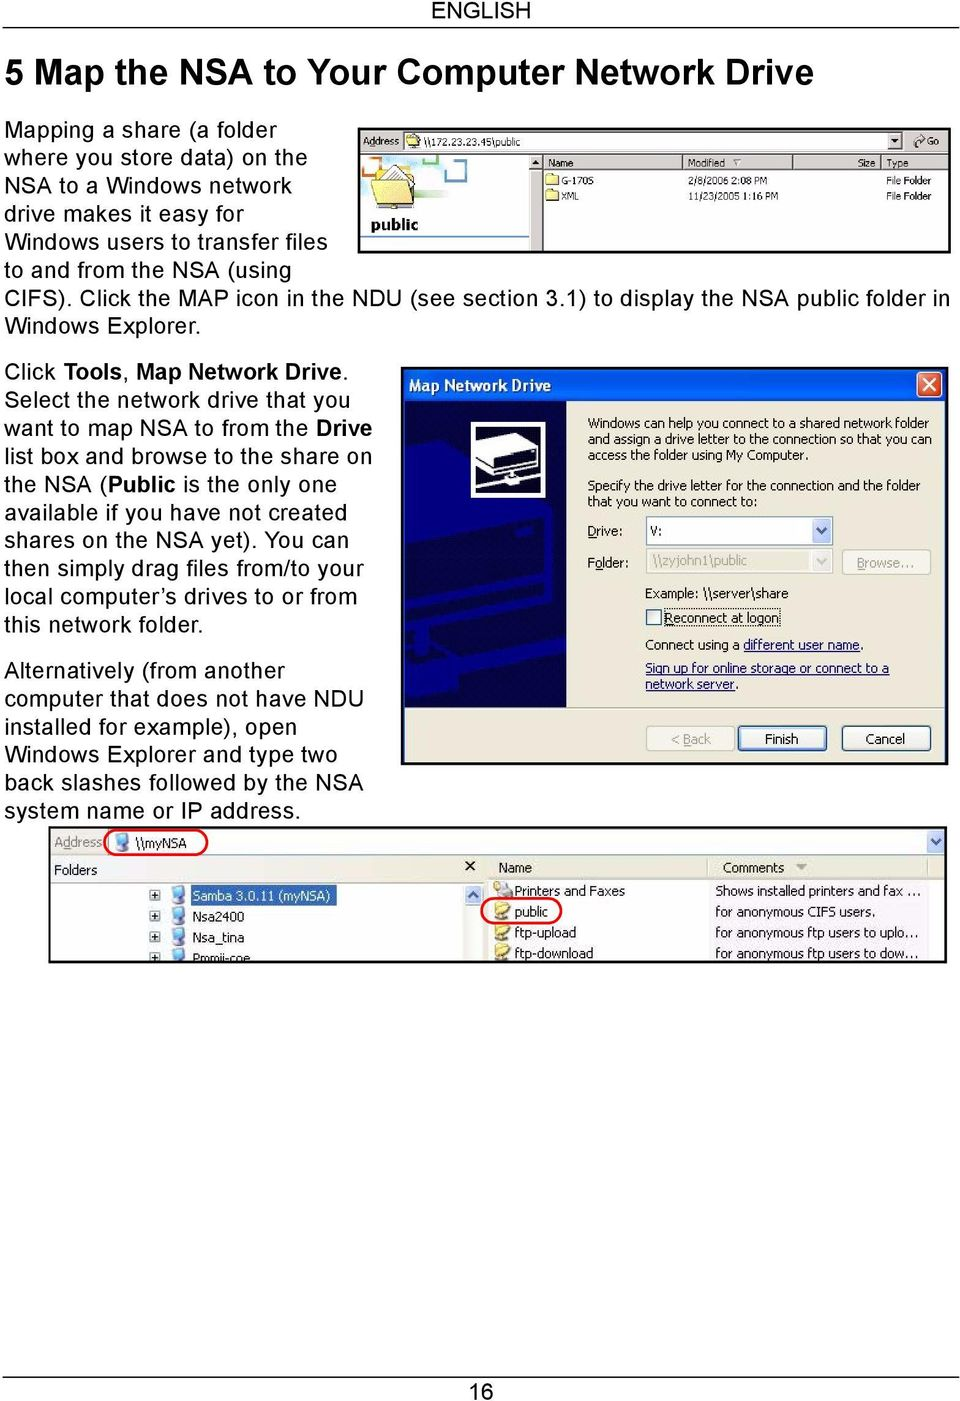 Select the network drive that you want to map NSA to from the Drive list box and browse to the share on the NSA (Public is the only one available if you have not created shares on the NSA yet).